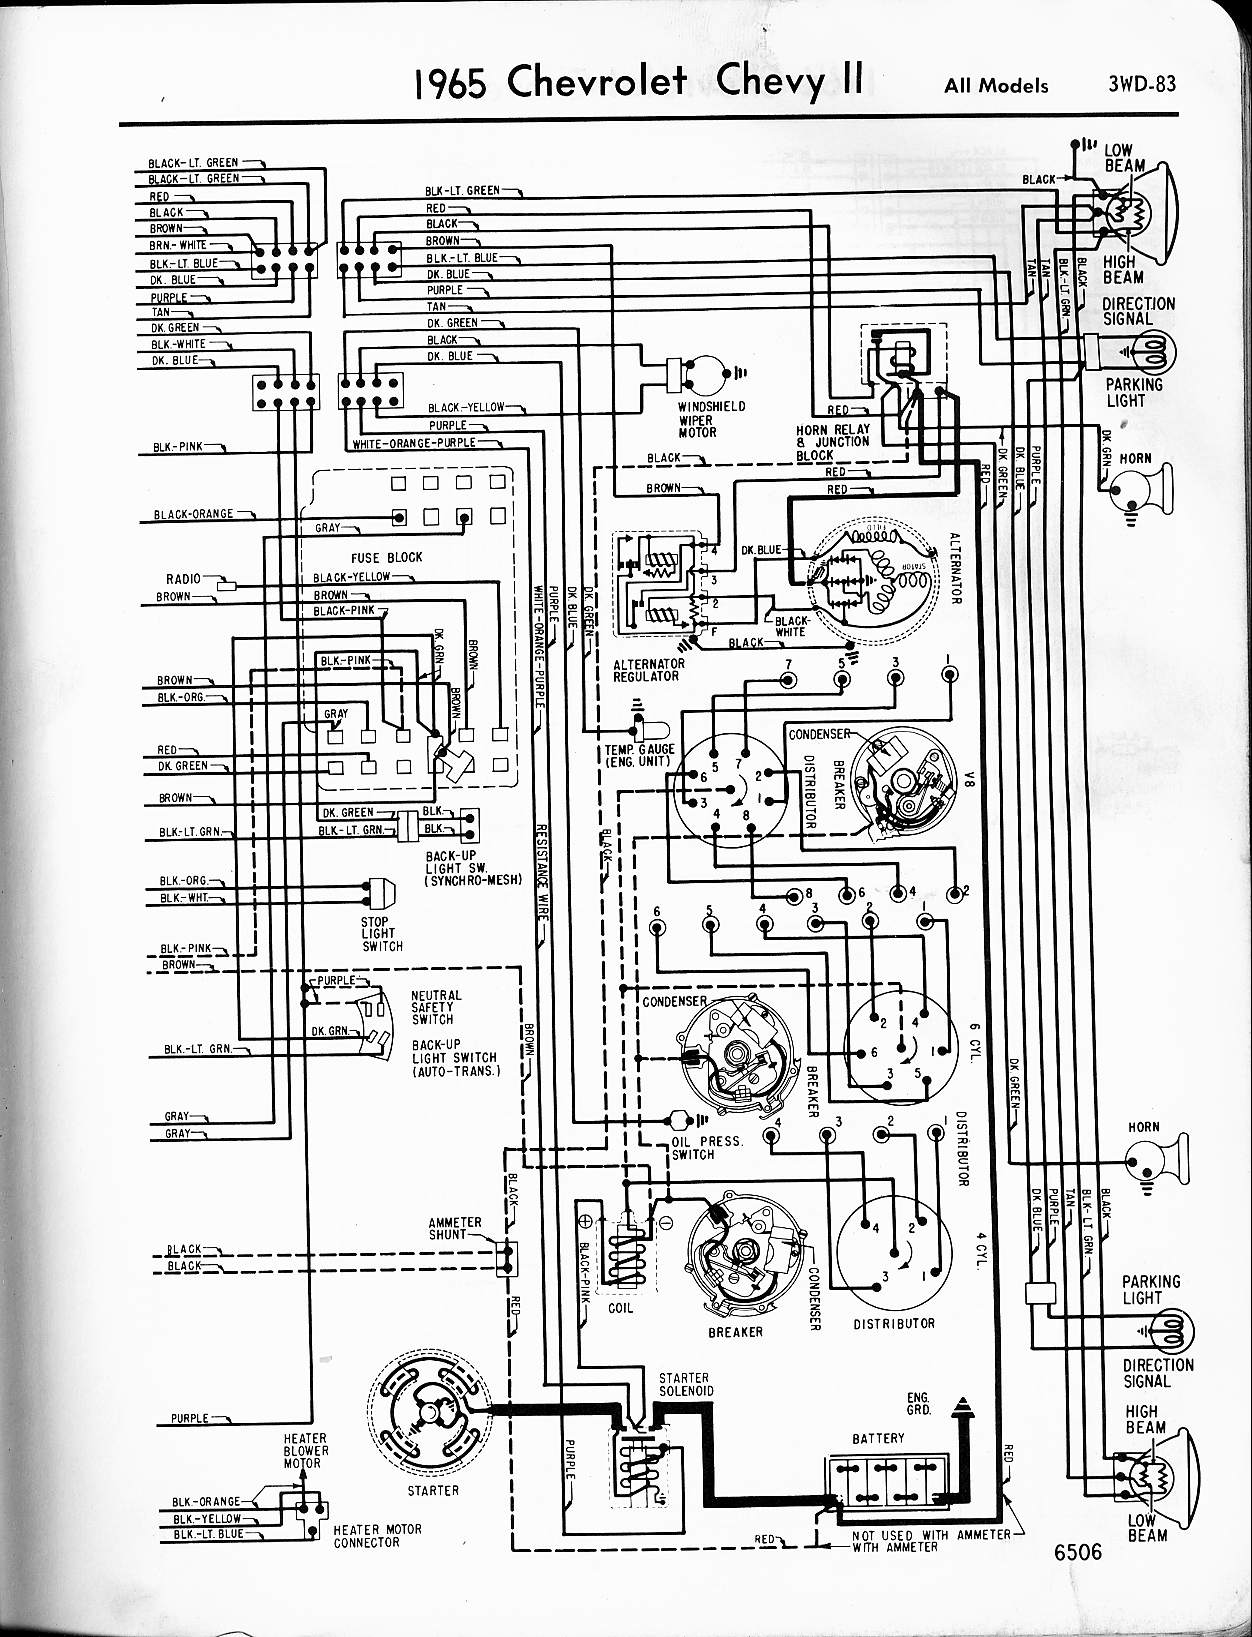 MWireChev65_3WD 083 64 falcon wiring diagram 64 comet ignition wiring \u2022 wiring 64 valiant wiring diagram at readyjetset.co